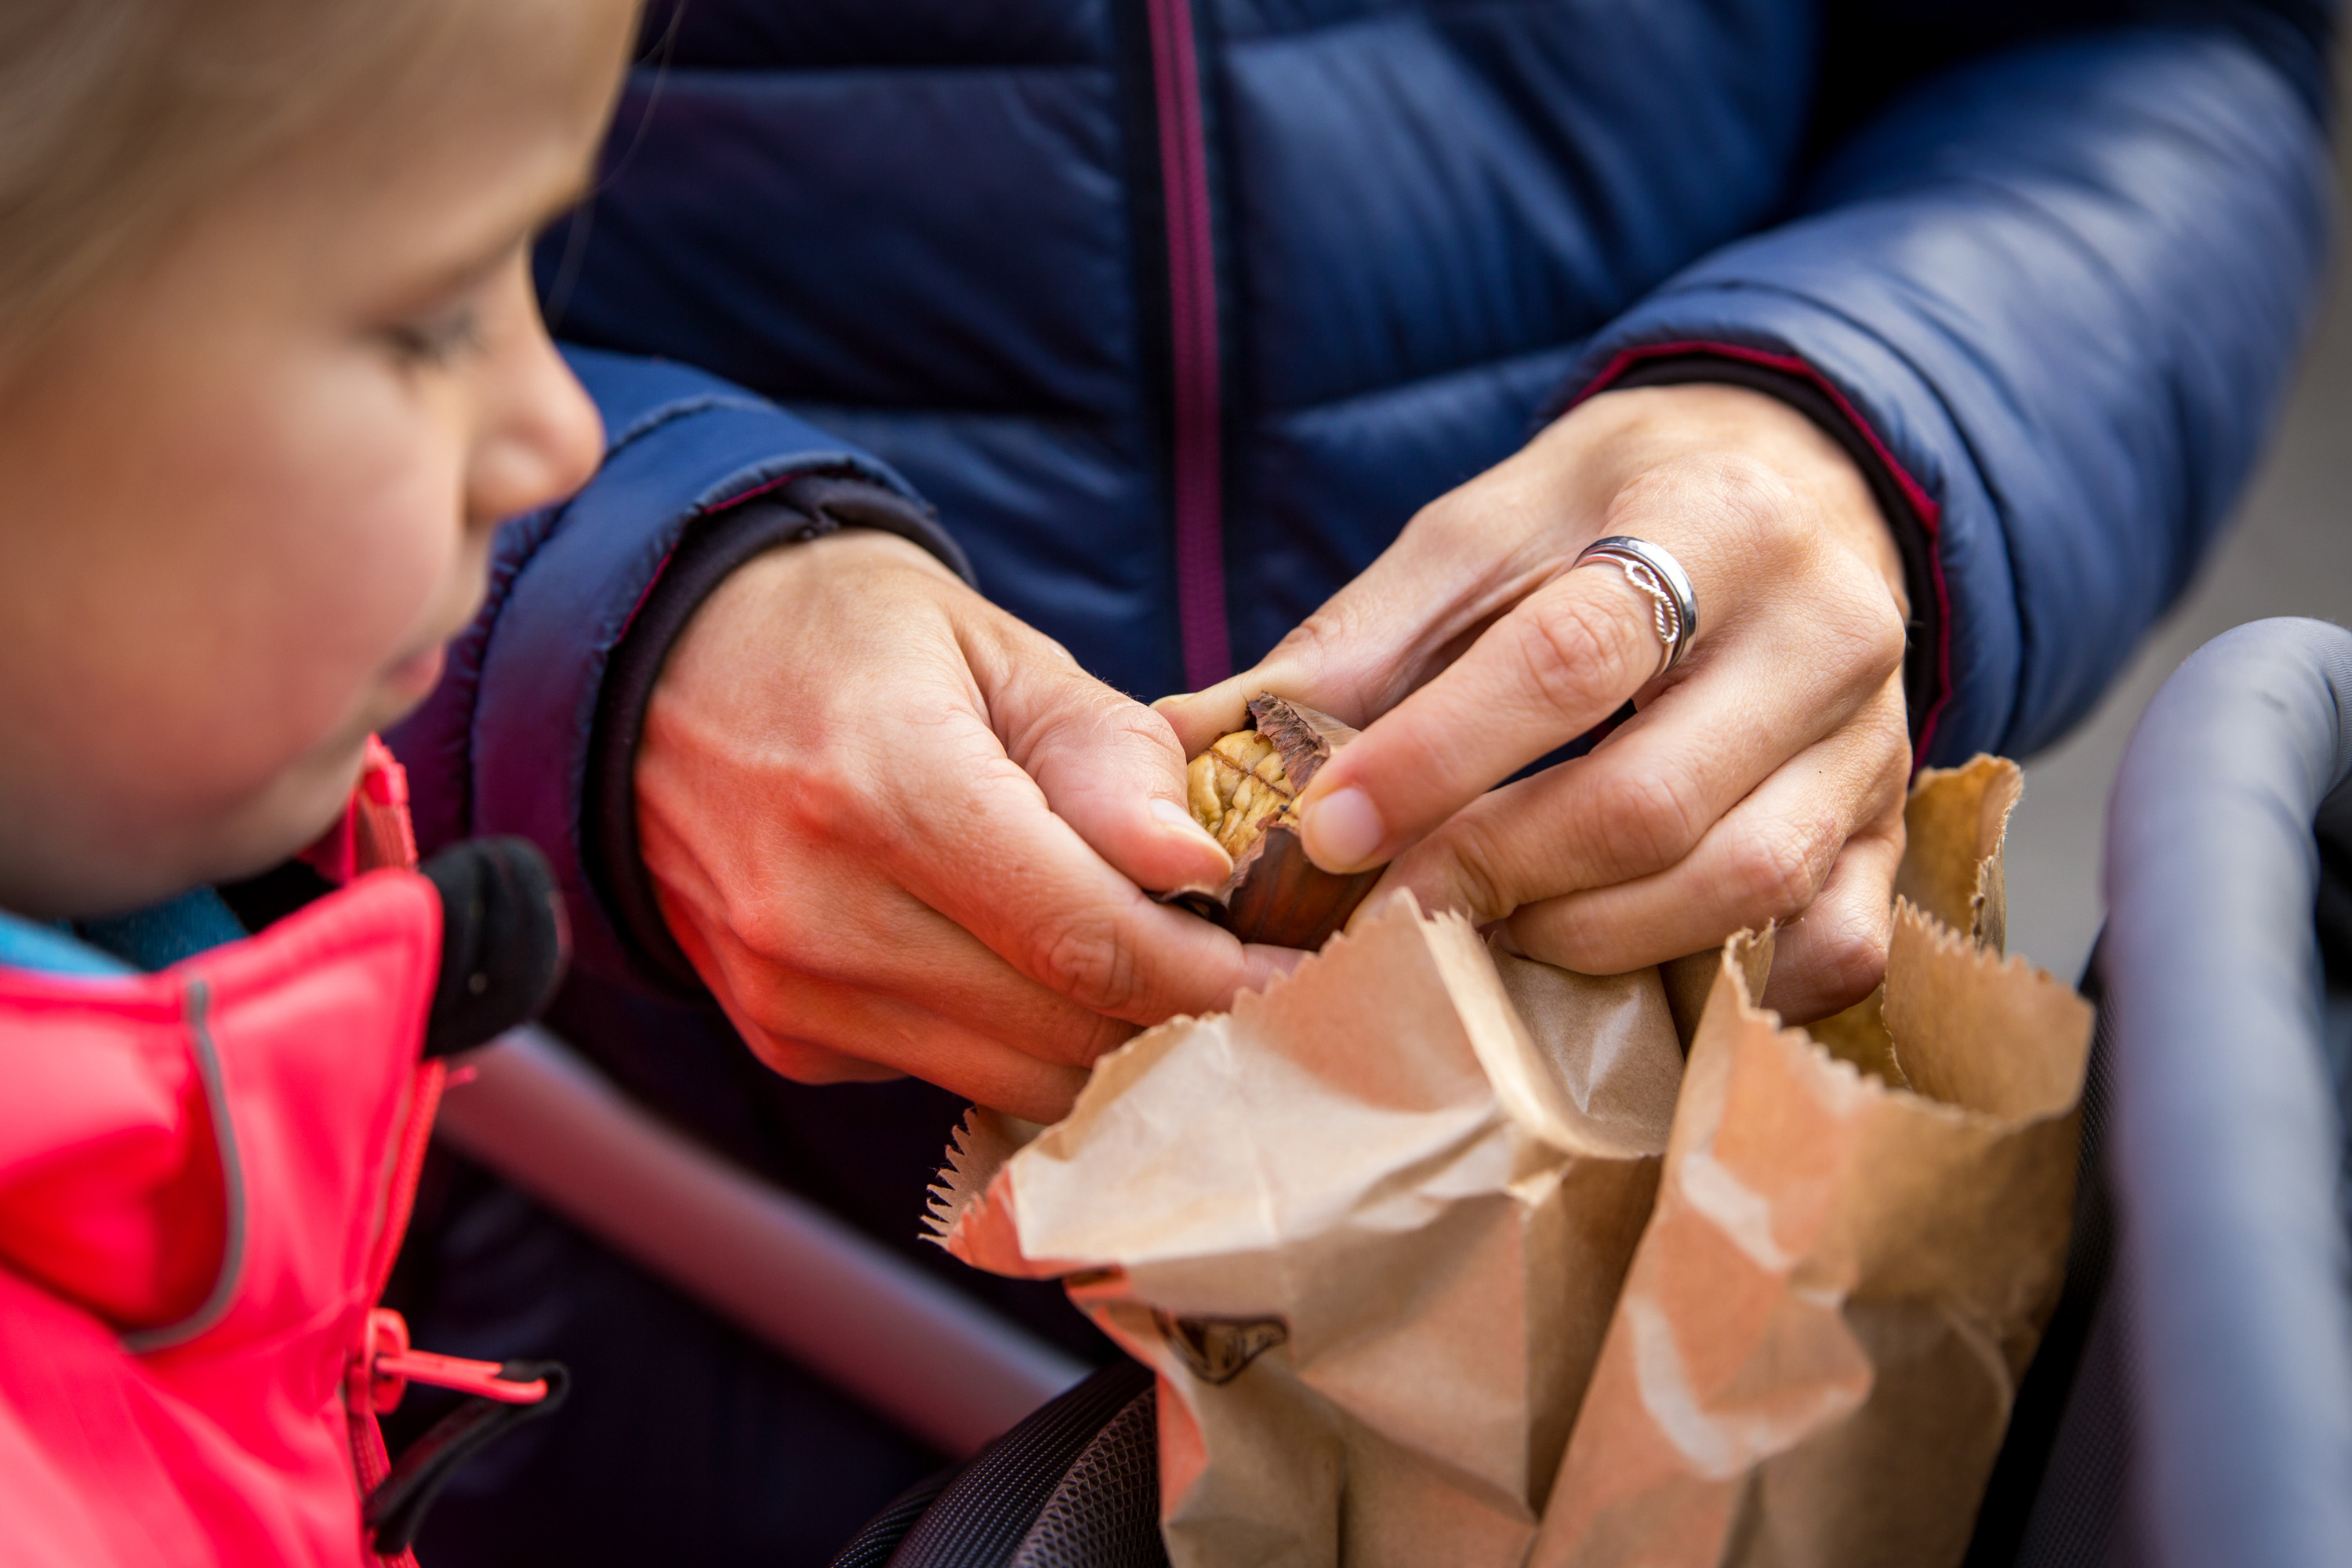 mother opening a roasted chestnut from a sale on a market, child looking on; Shutterstock ID 750864481; Purchase Order: FdW 5 - Juli; Job: ; Client/Licensee: ; Other: